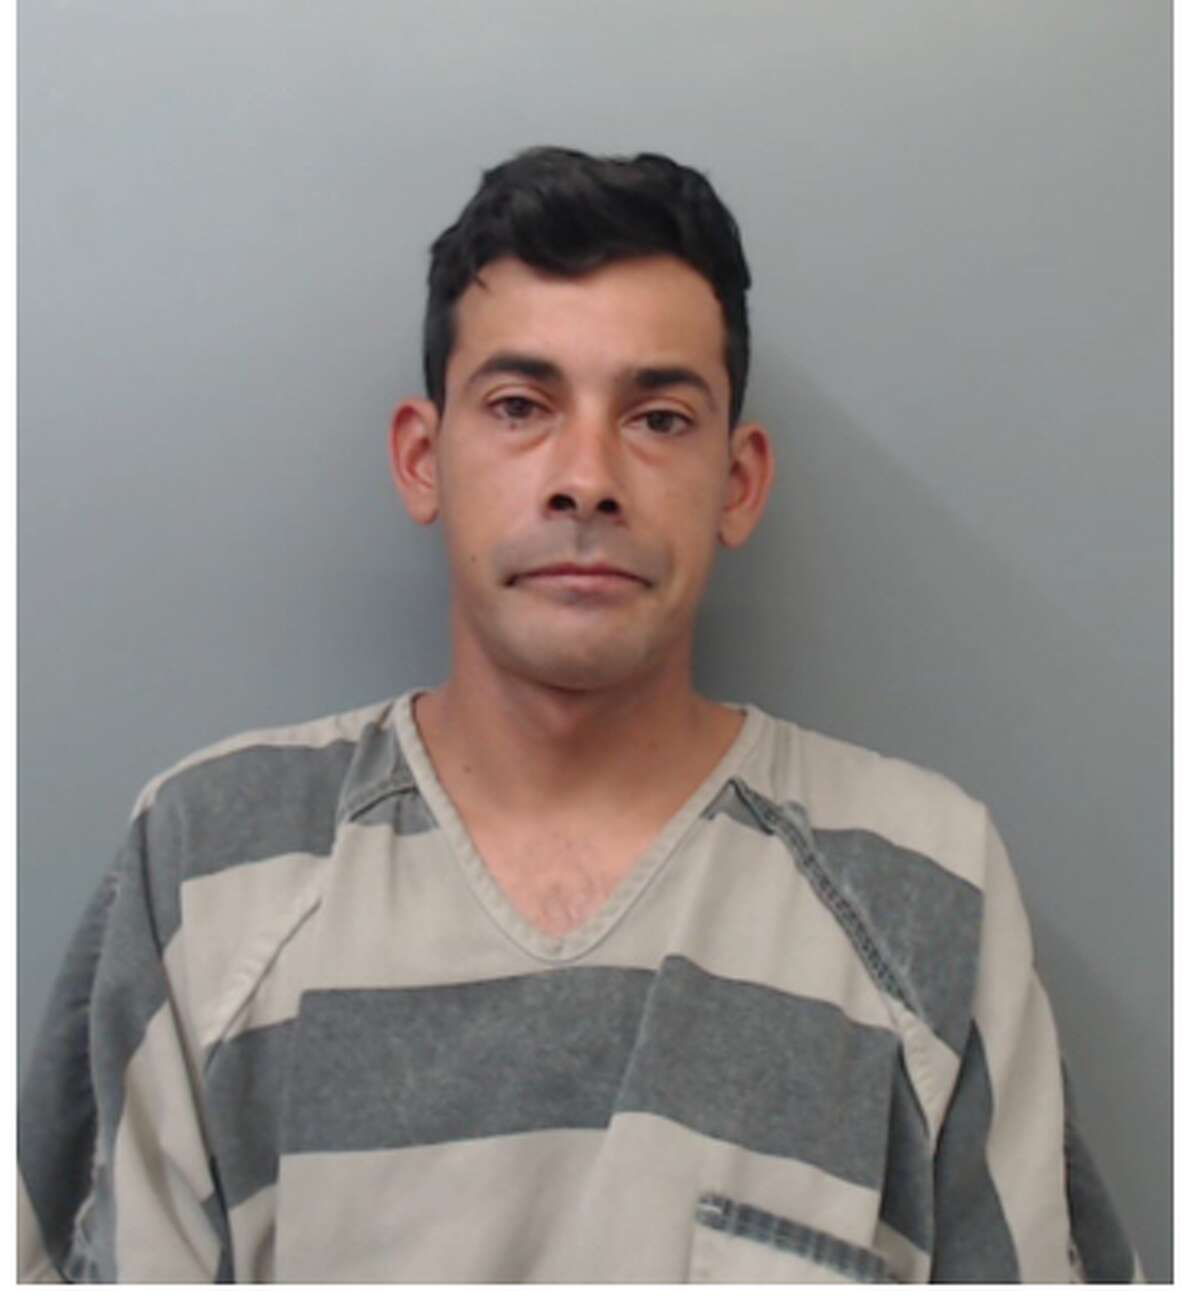 Alfredo Fernando Garcia, 34, was charged with driving while intoxicated.